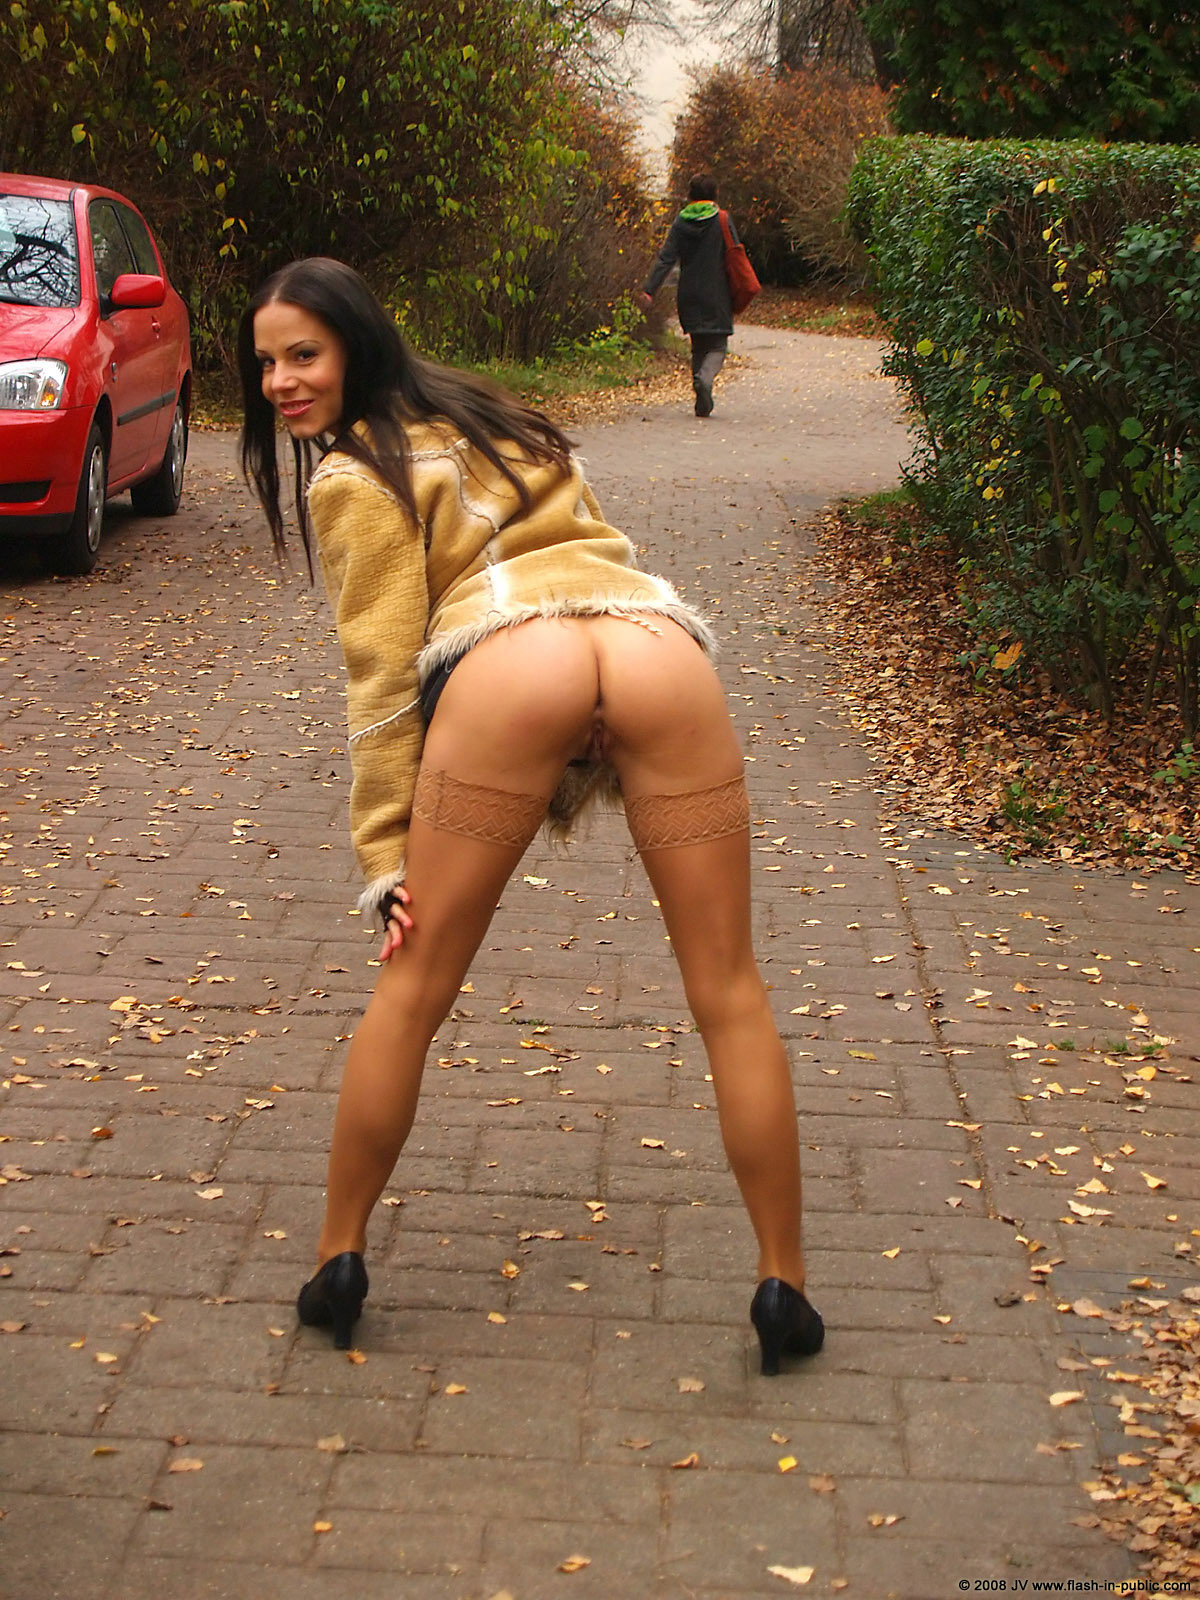 alexandra-g-bottomless-stockings-flash-in-public-21